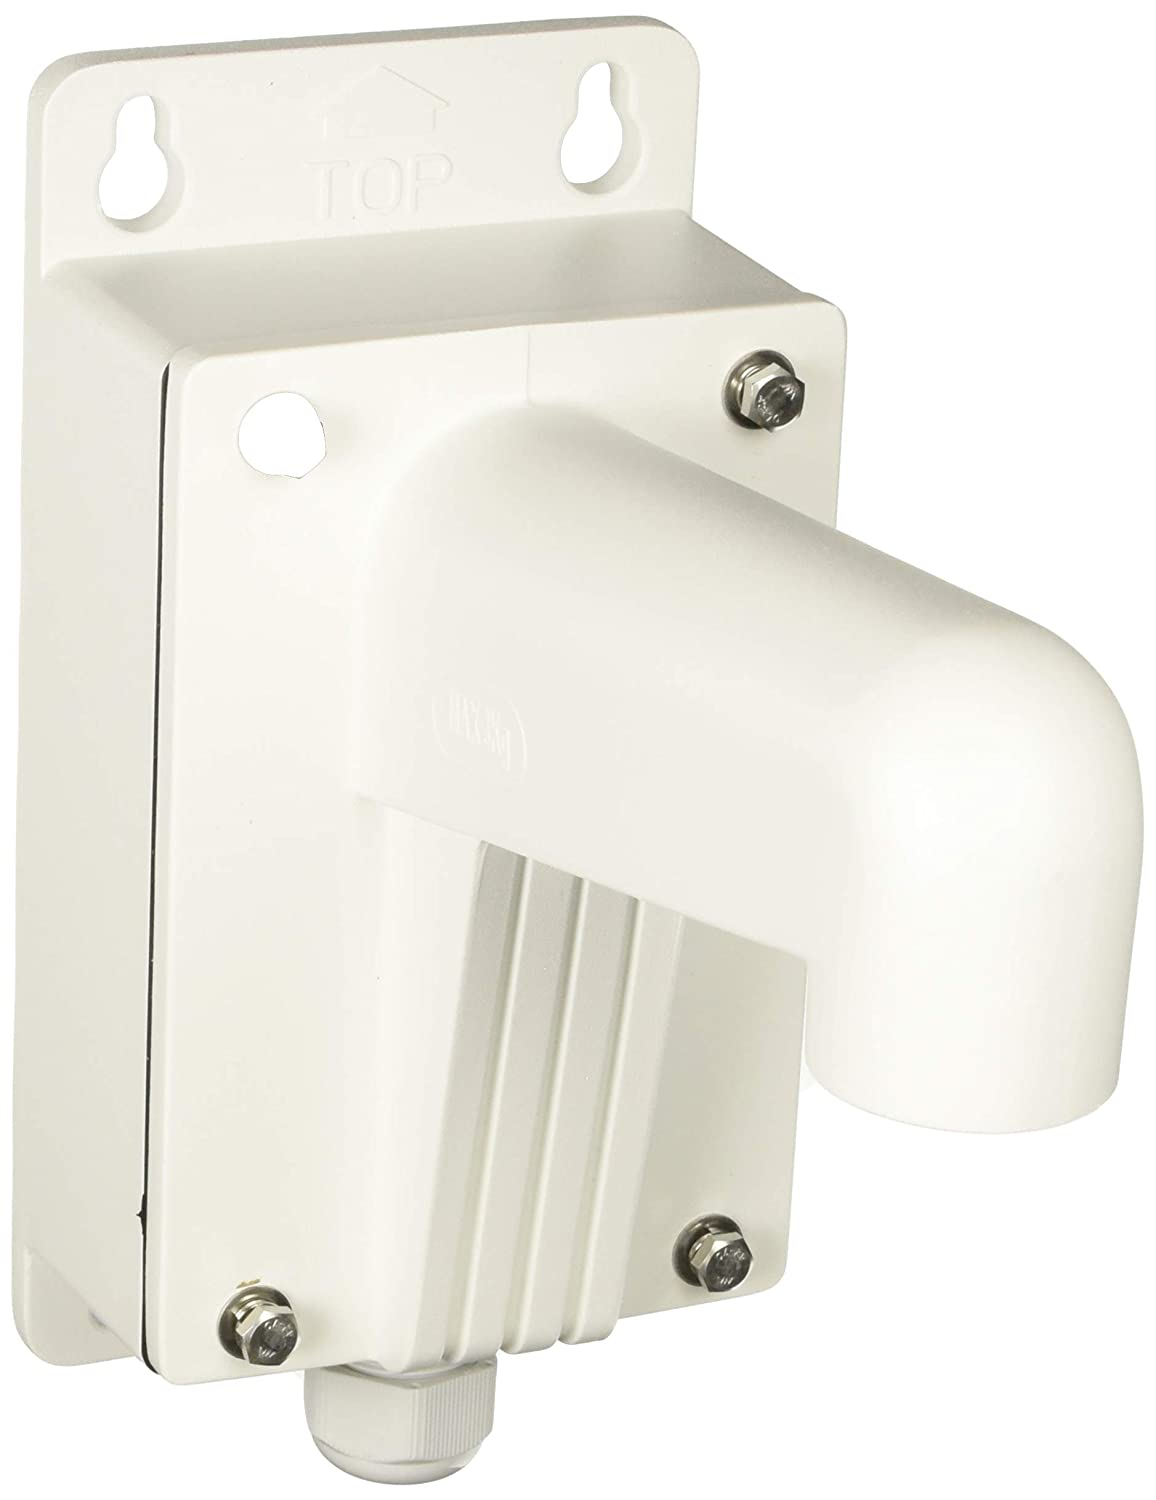 Hikvision WML Aluminum Alloy Wall Mount with Junction Box, Long Hikvision USA